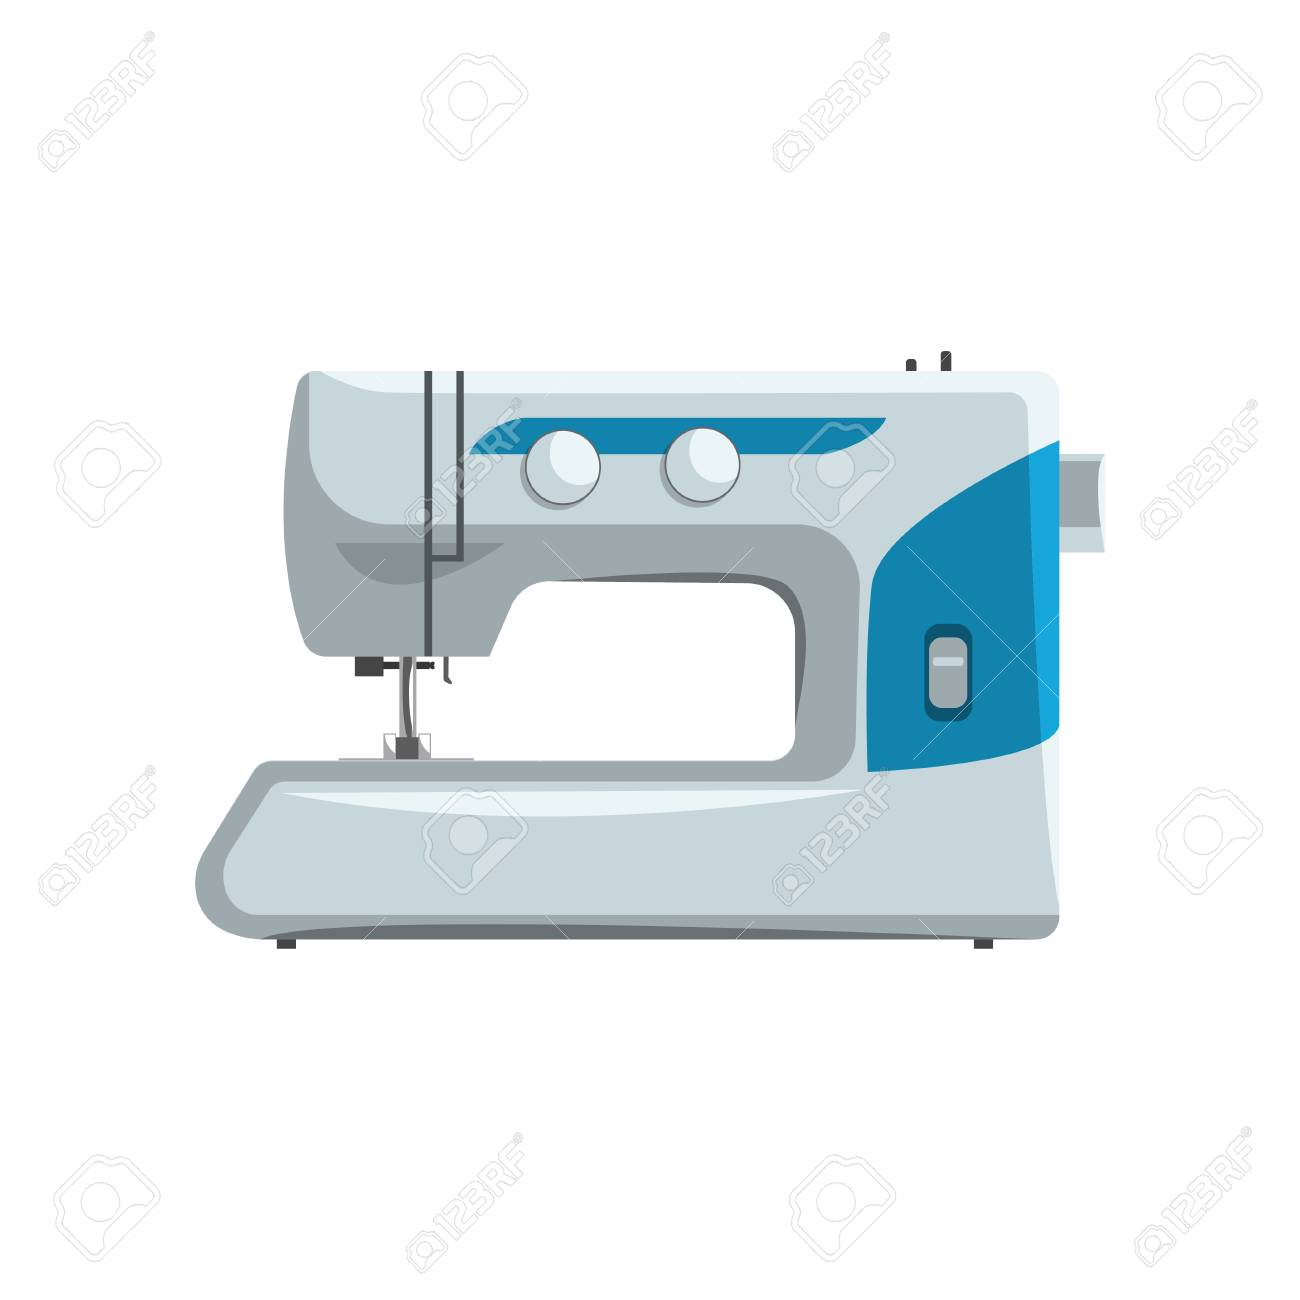 Modern sewing machine, dressmakers equipment vector Illustration isolated on a white background. - 104166054